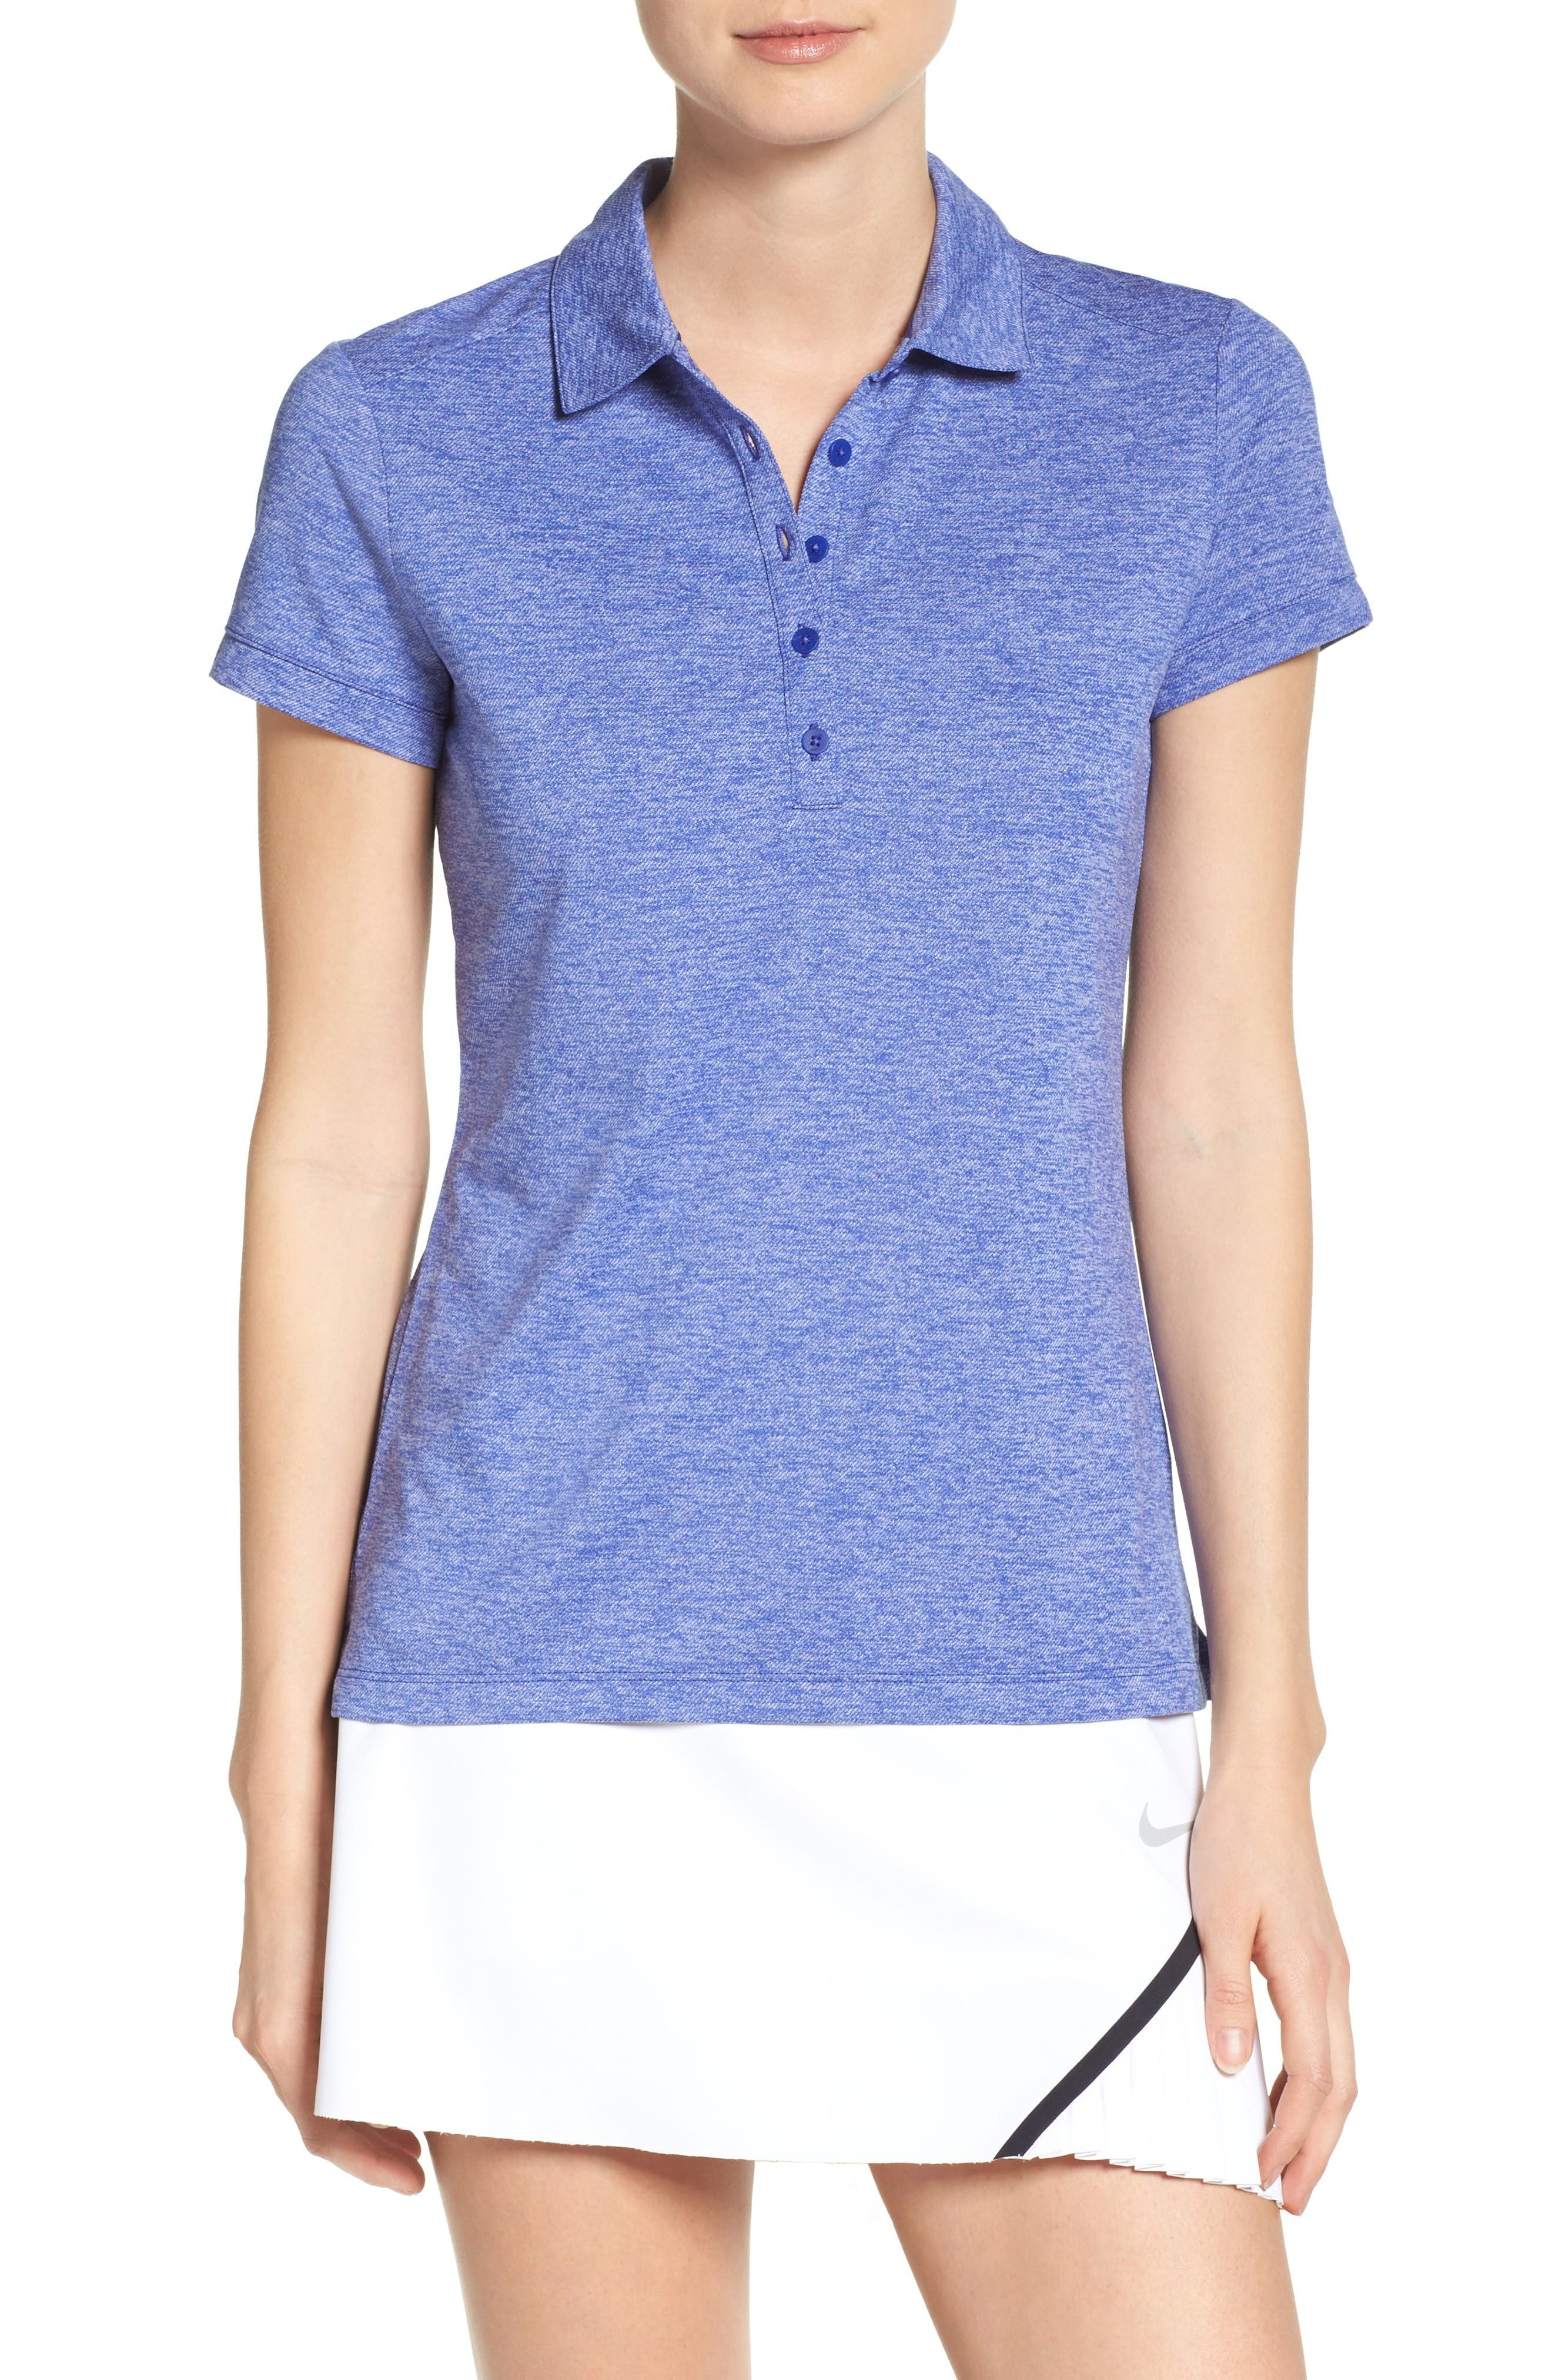 Nike 'Victory Texture' Golf Polo